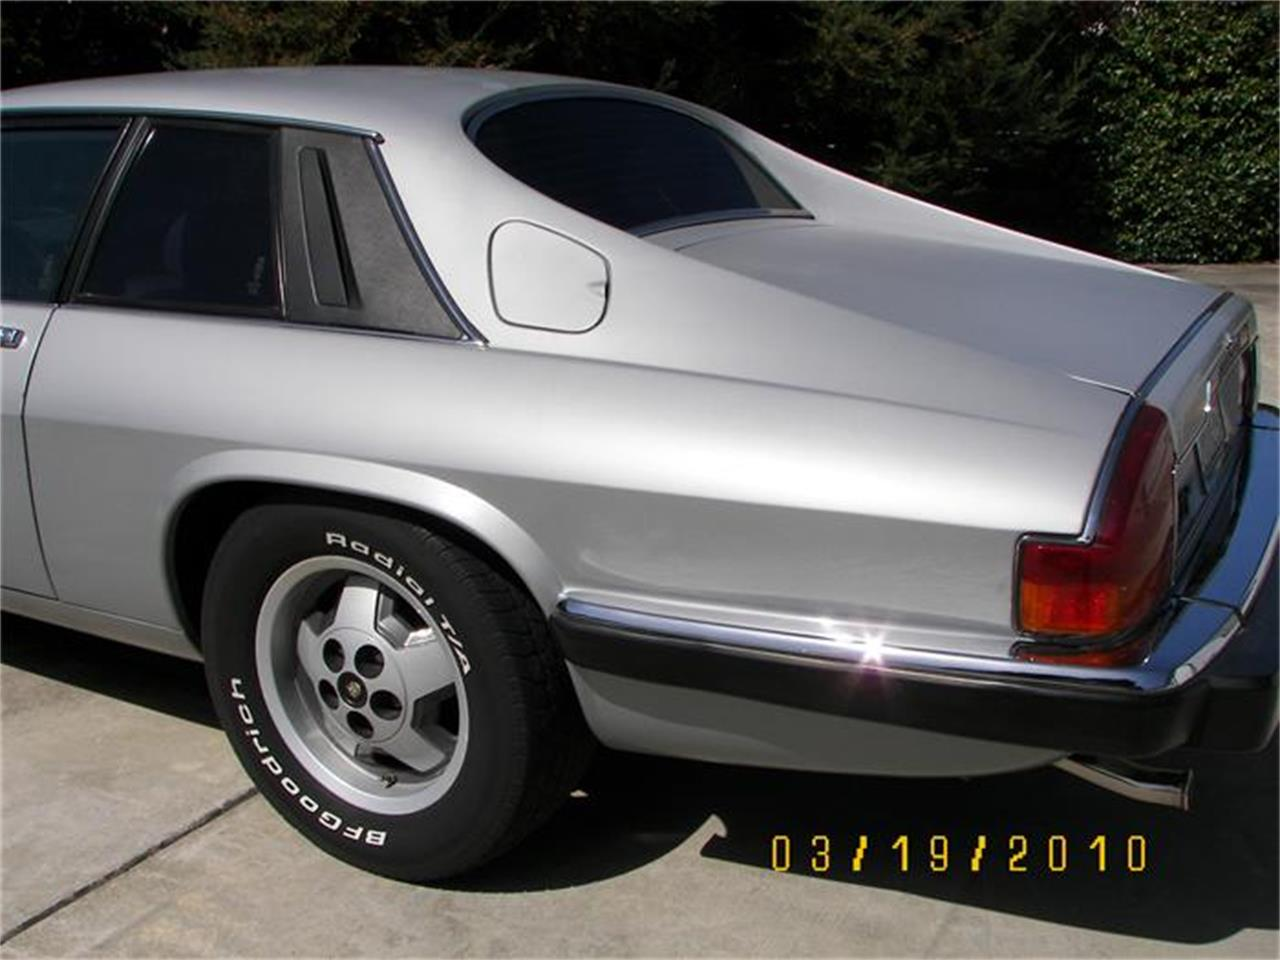 Large Picture of '85 Jaguar XJS located in Fremont California - $7,500.00 Offered by a Private Seller - 2YG4